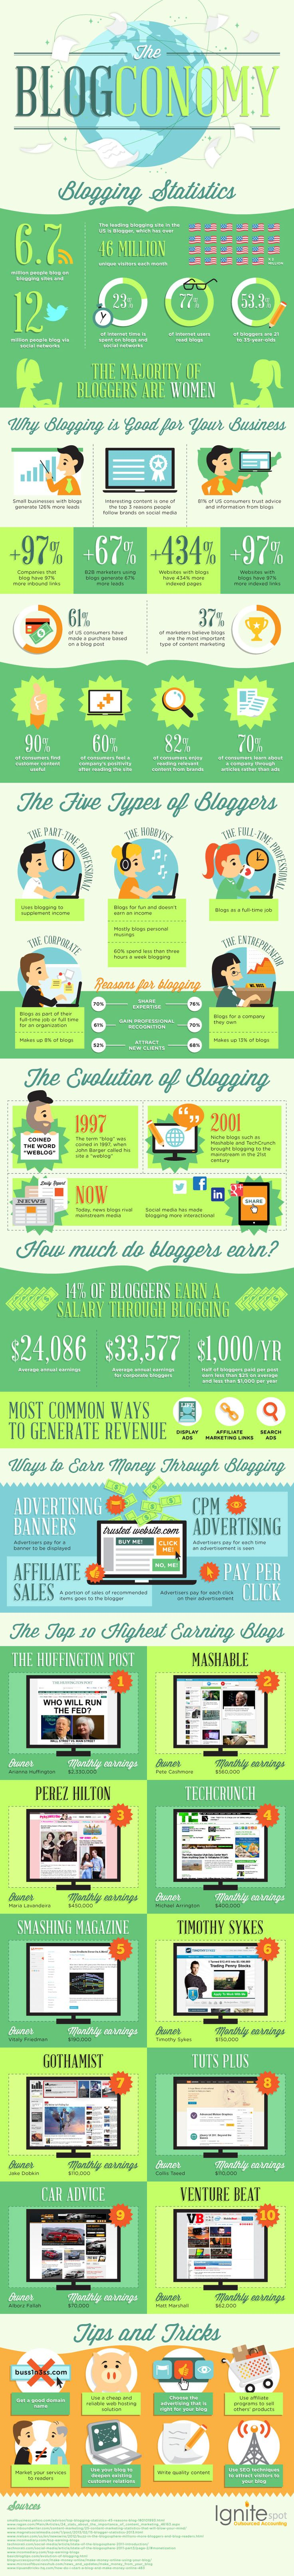 Why Blogging Is The Best Marketing Tool You Will Find #infographic via @sergiososa #socialmedia